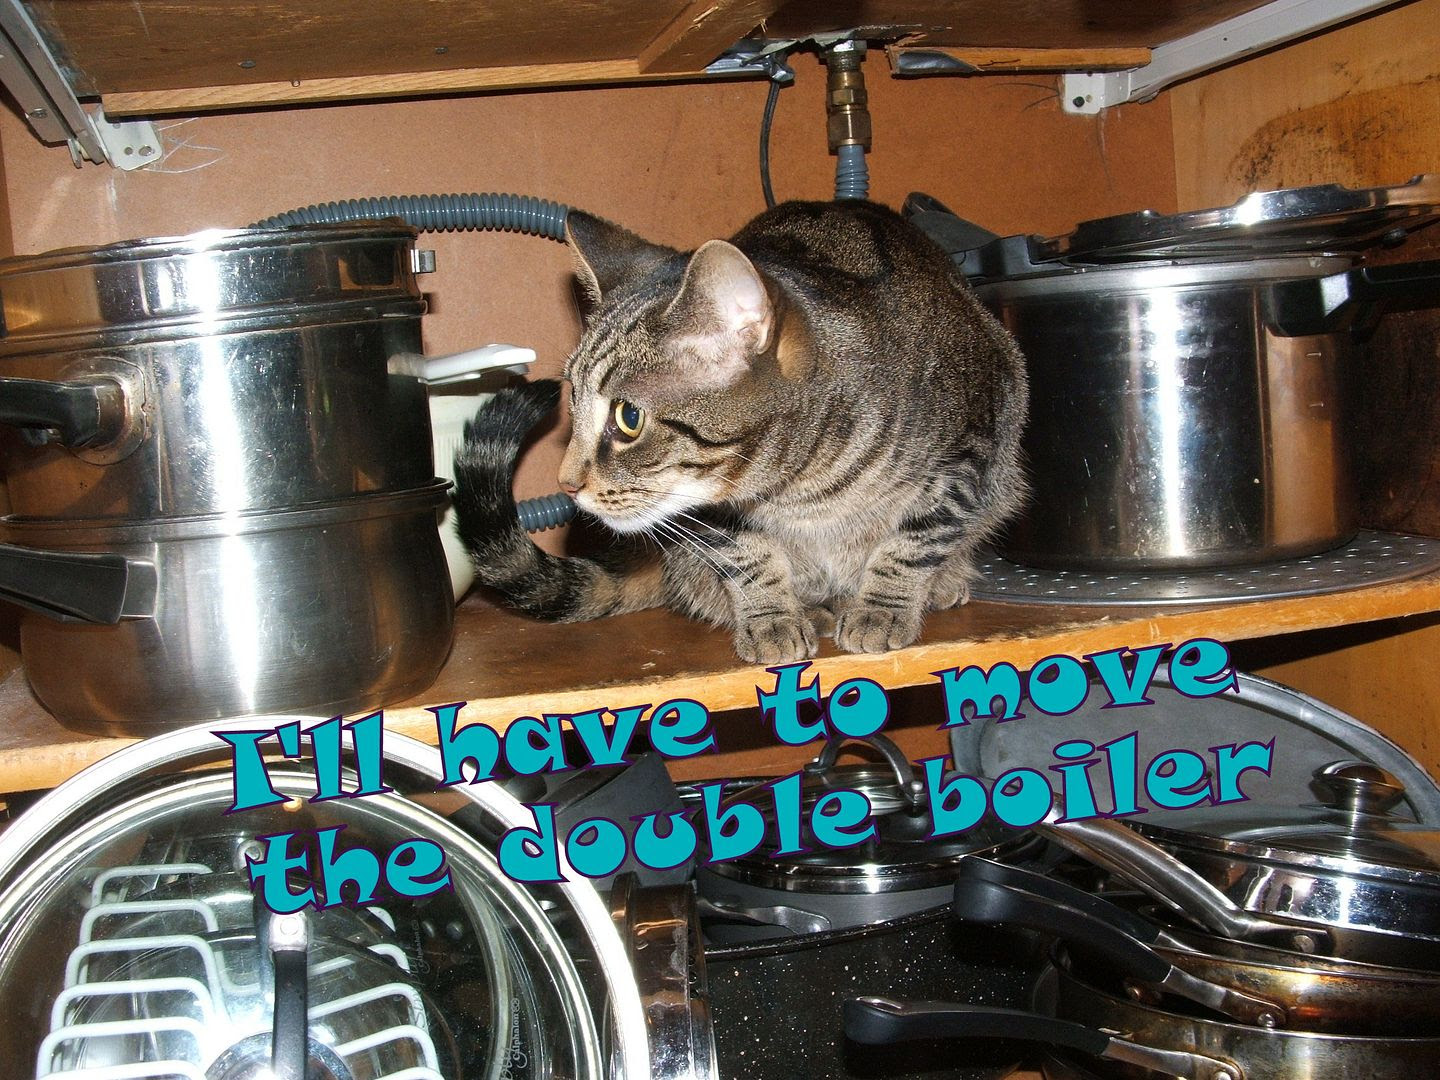 by Angie Ouellette-Tower for http://www.godsgrowinggarden.com/ photo DSCF8053_zpsee3gsgc0.jpg